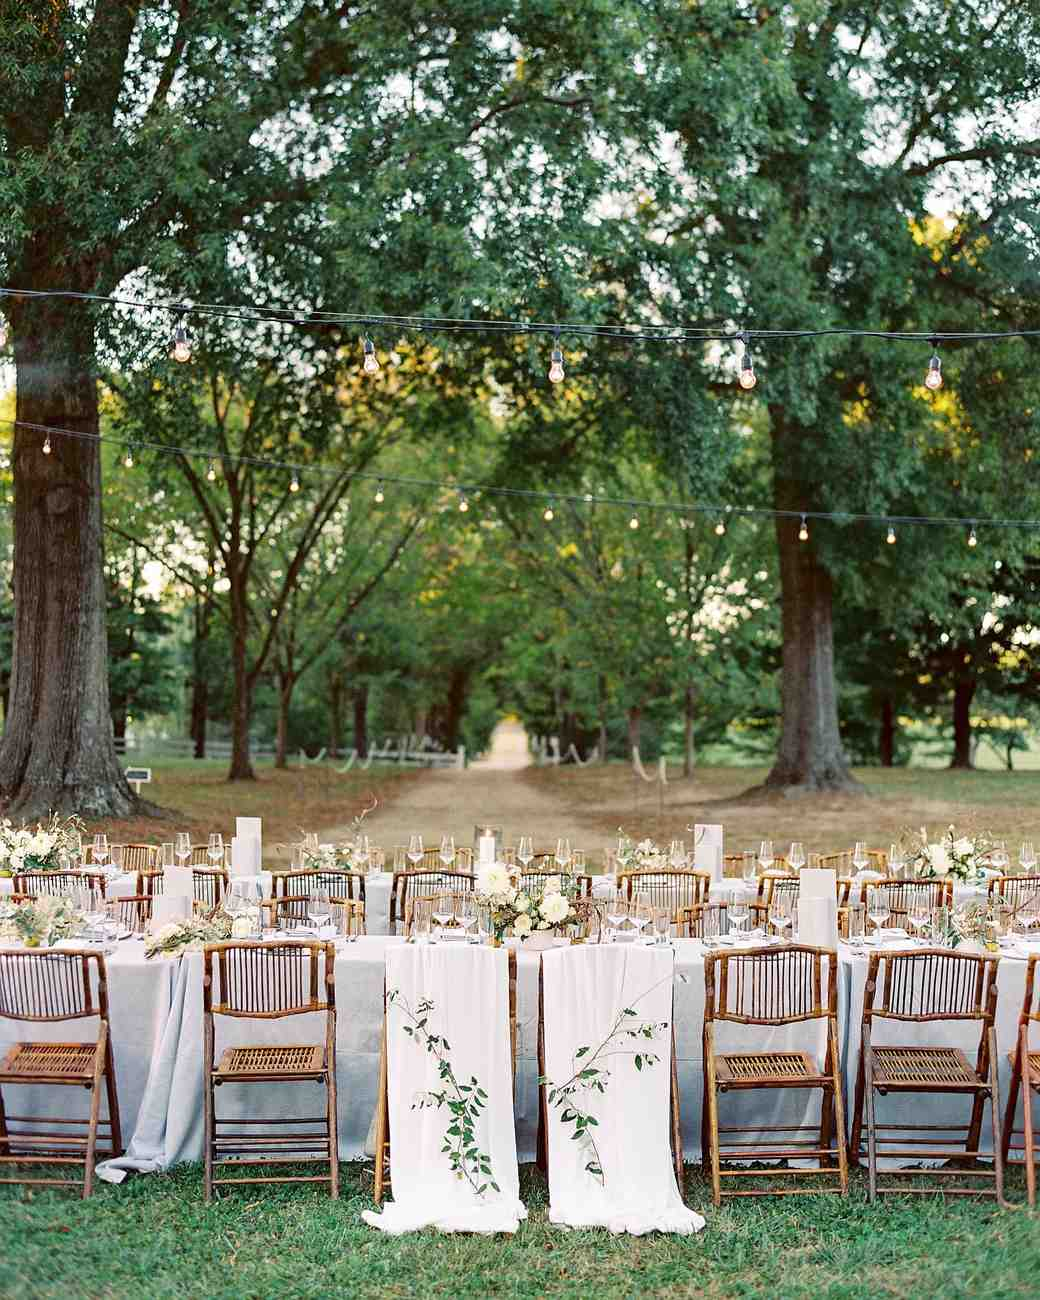 linda robert wedding chairbacks